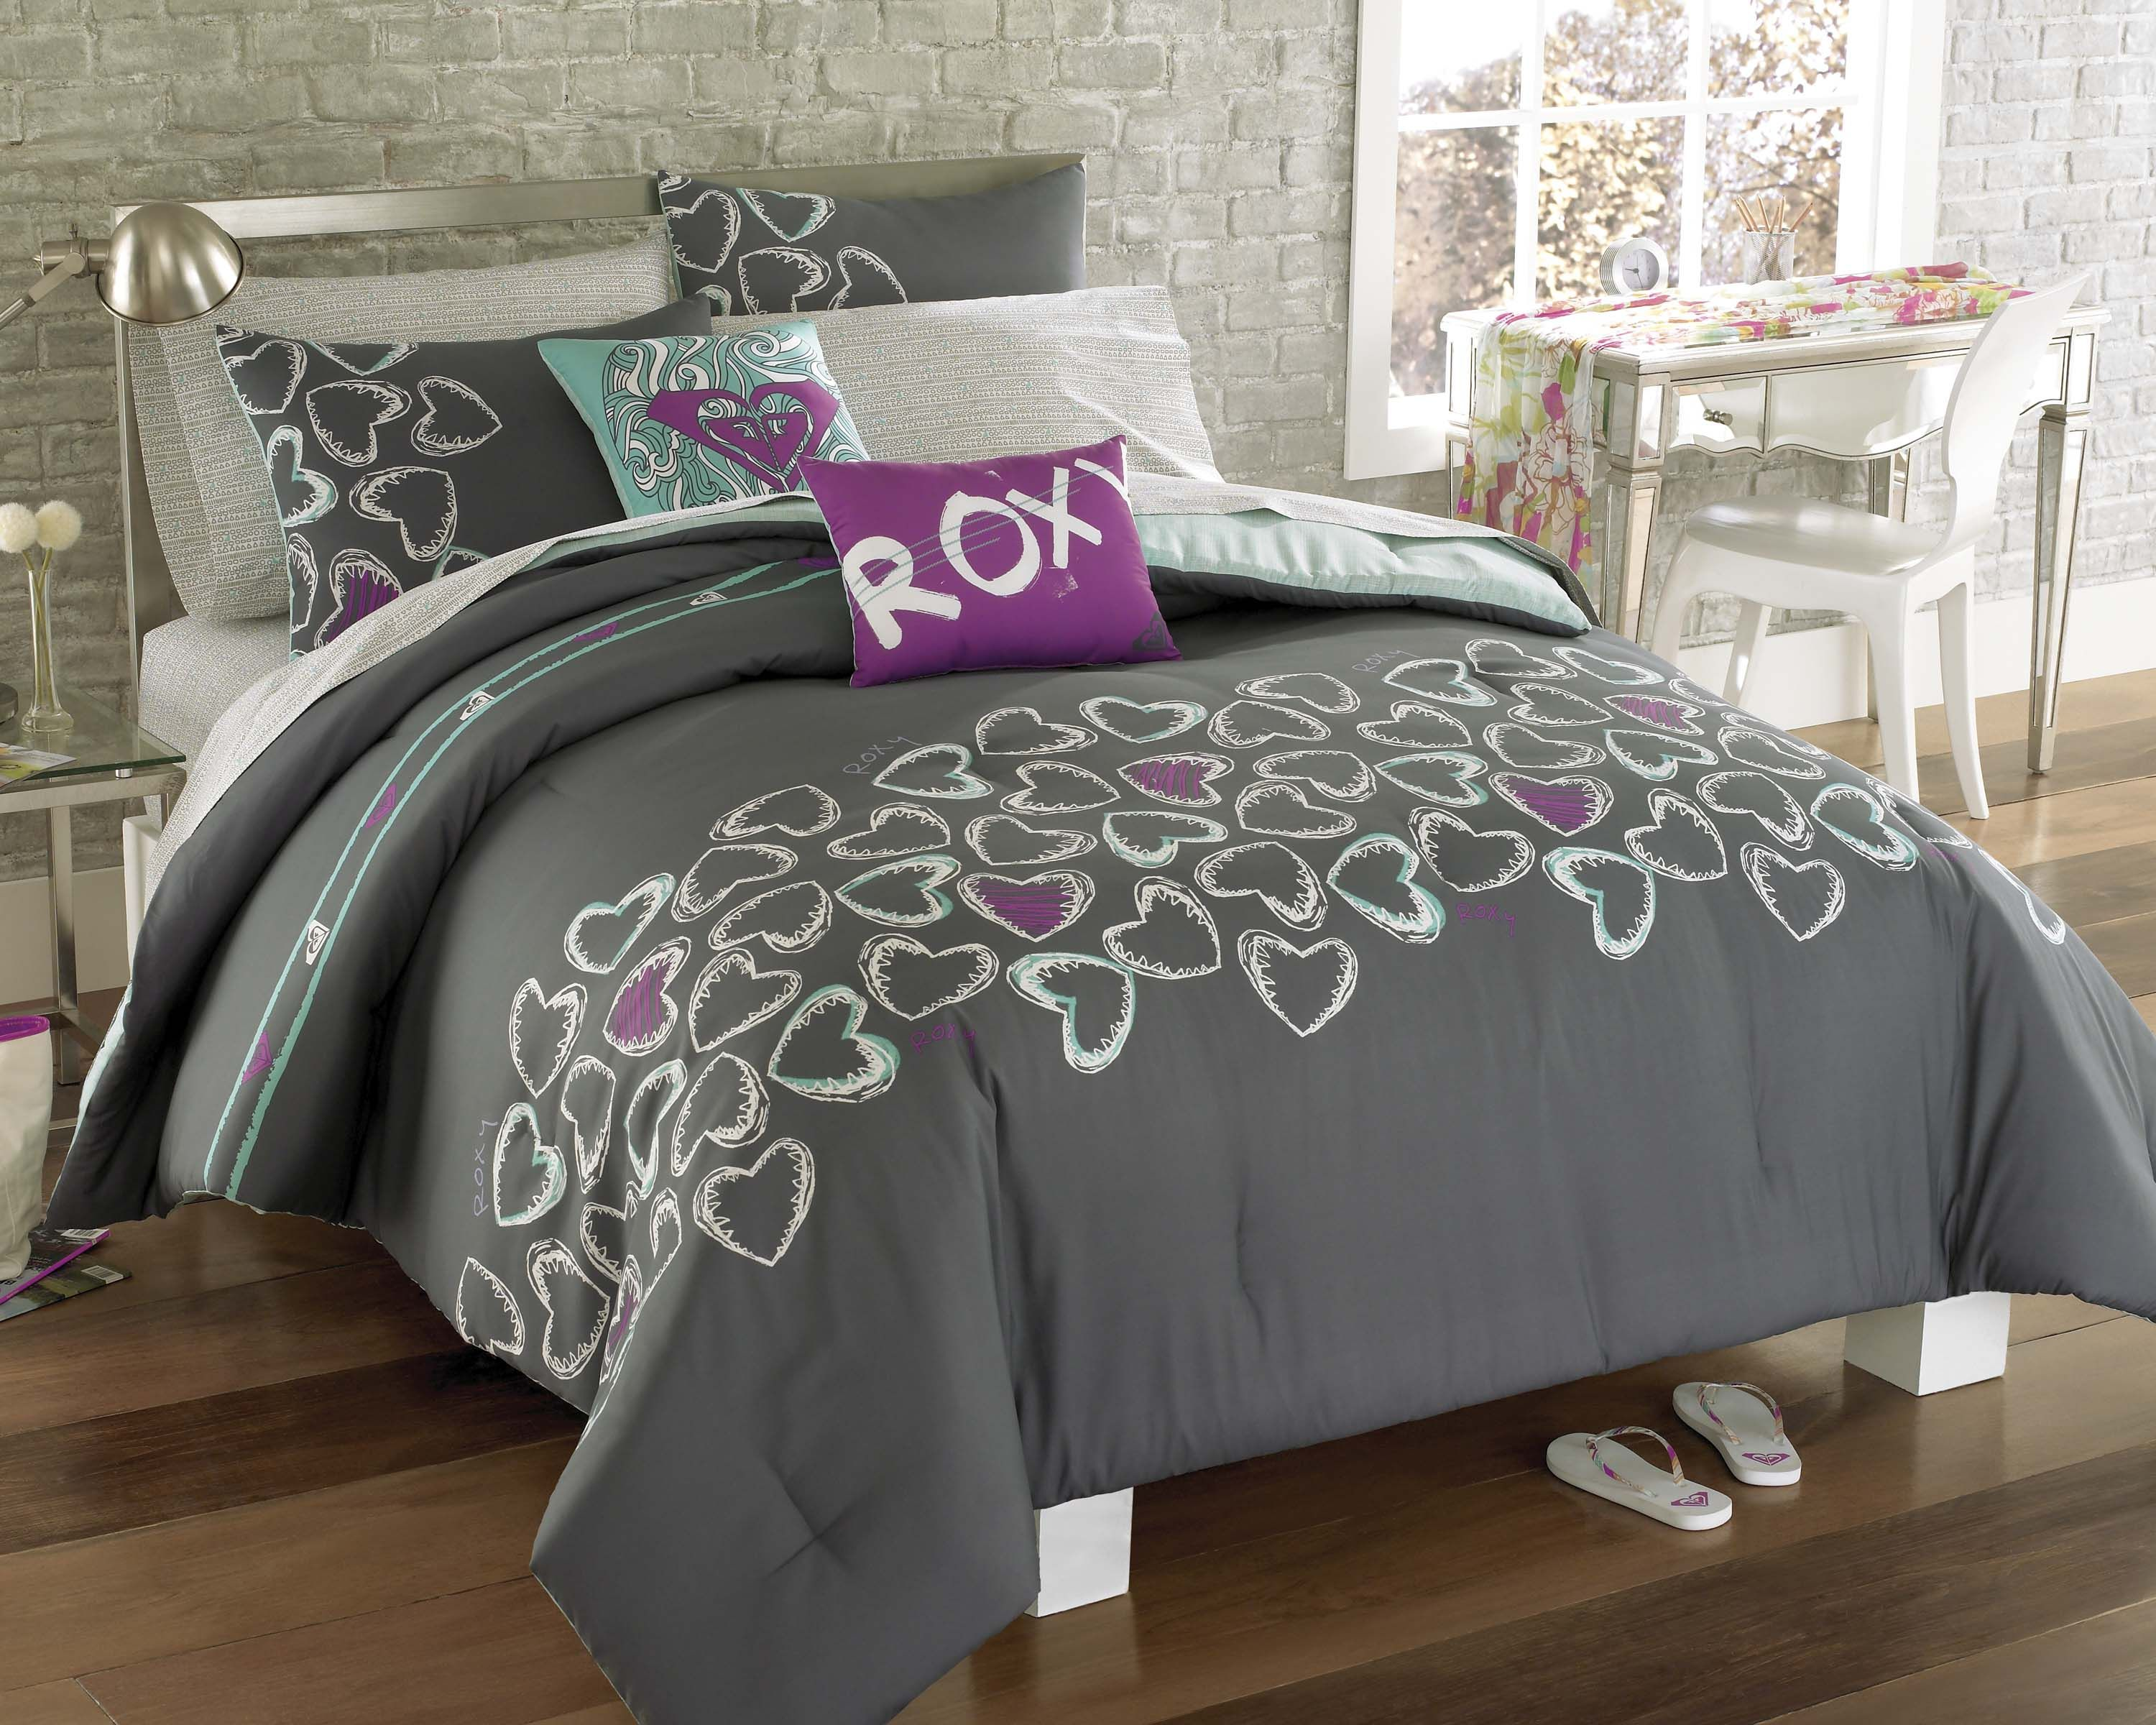 Roxy beach bedding - Roxy Bedding Heart And Soul Comforter Sets Bedding Collections Bed Bath Macy S Bridal And Wedding Registry